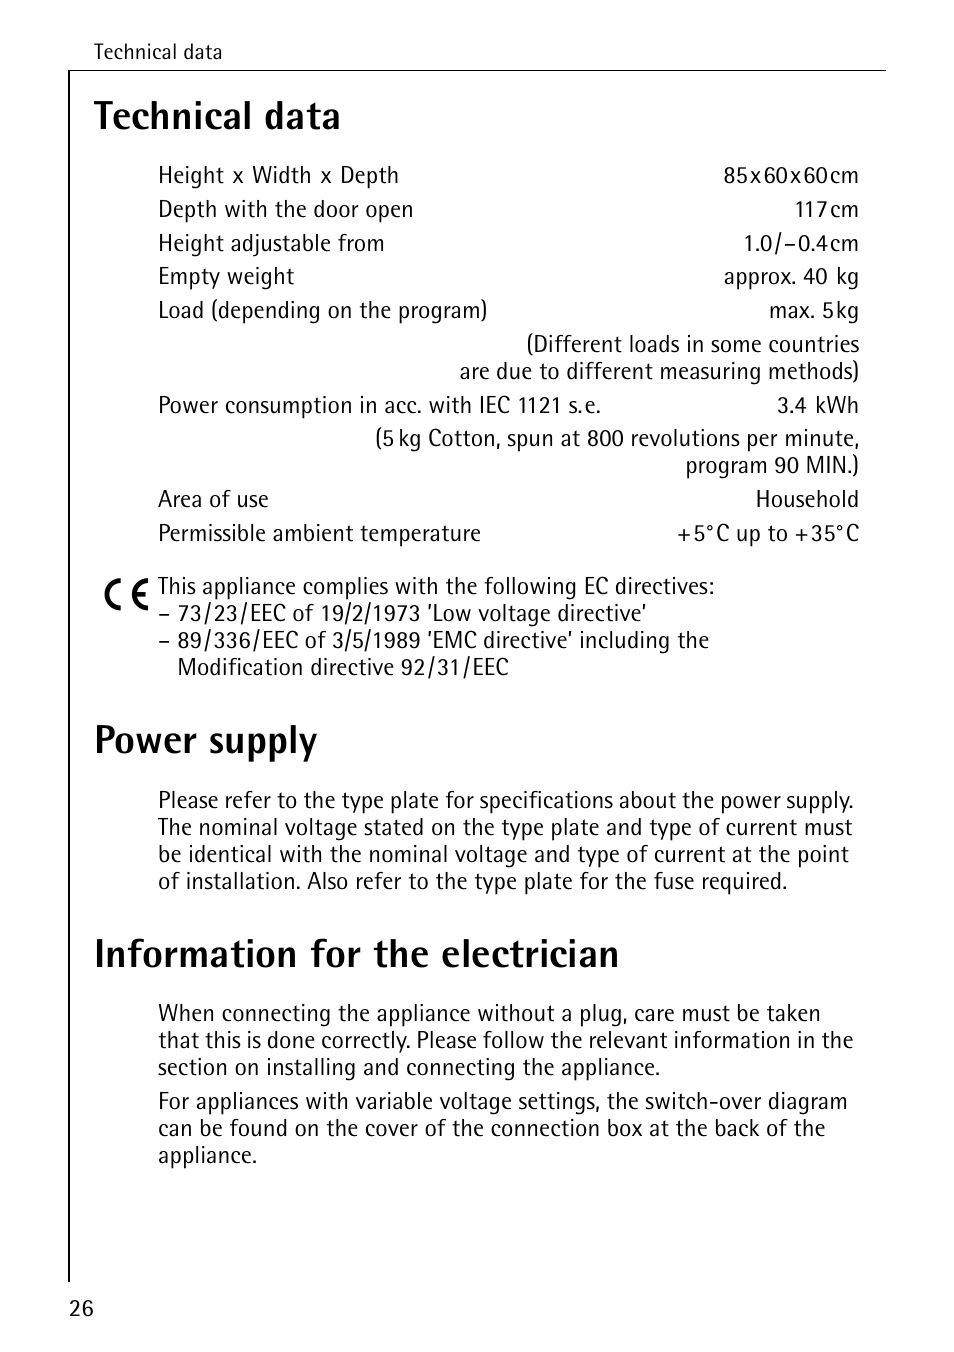 Technical Data Power Supply Information For The Electrician Aeg Variable Voltage And Current Lavatherm T30 User Manual Page 26 32